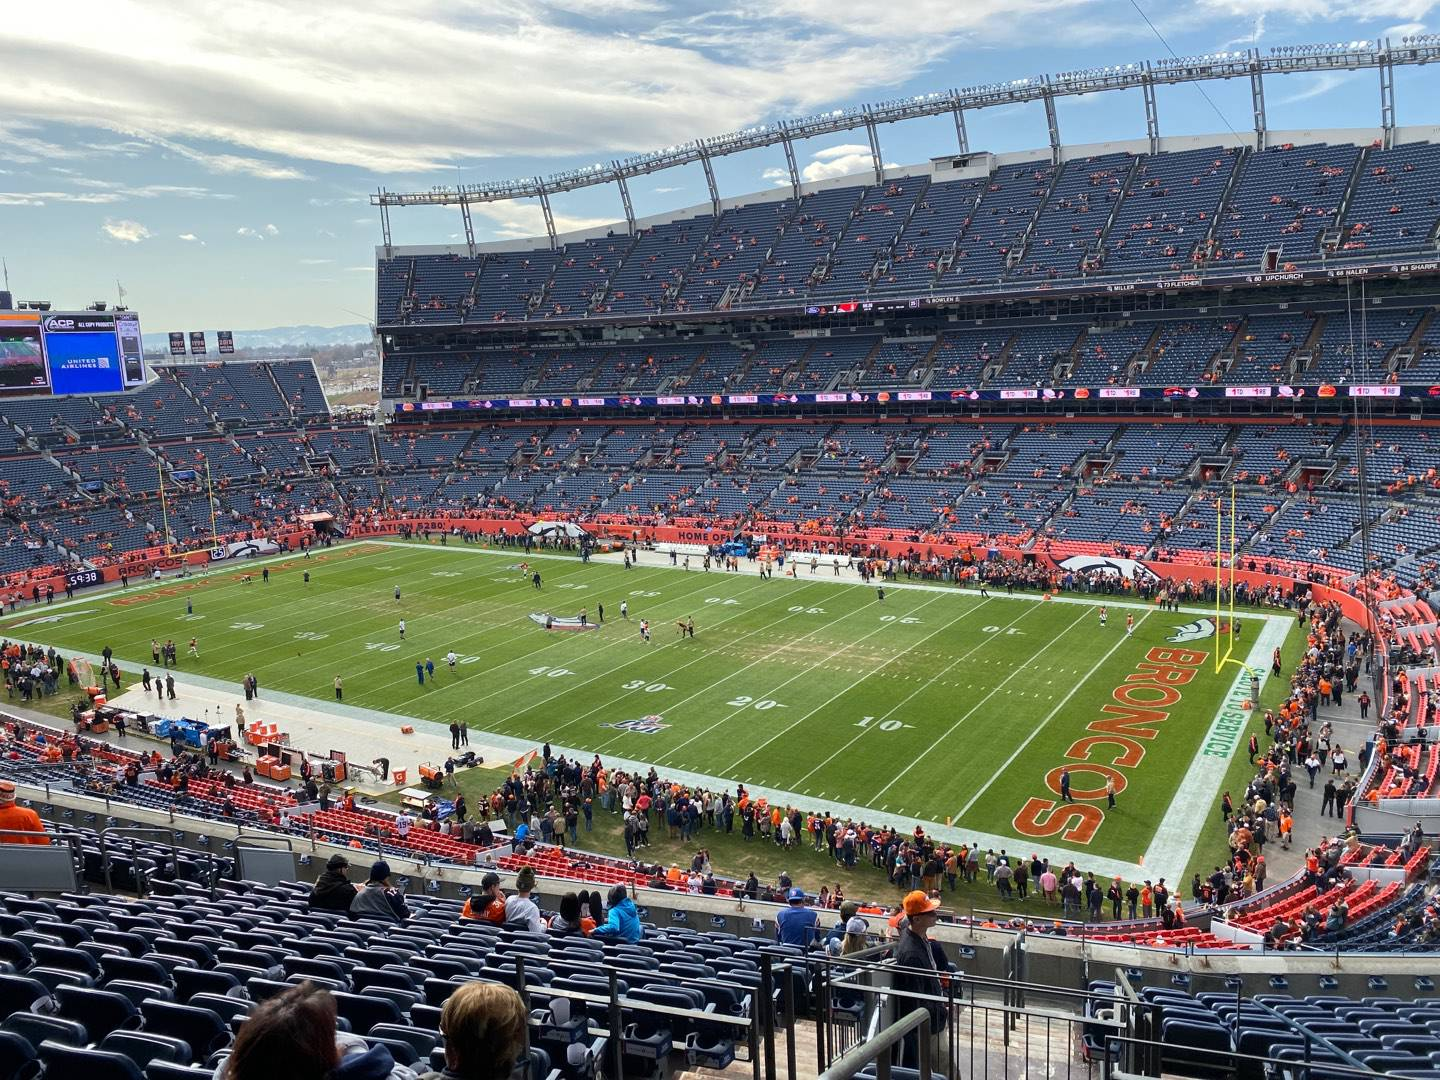 Empower Field at Mile High Stadium Section 330 Row 15 Seat 22